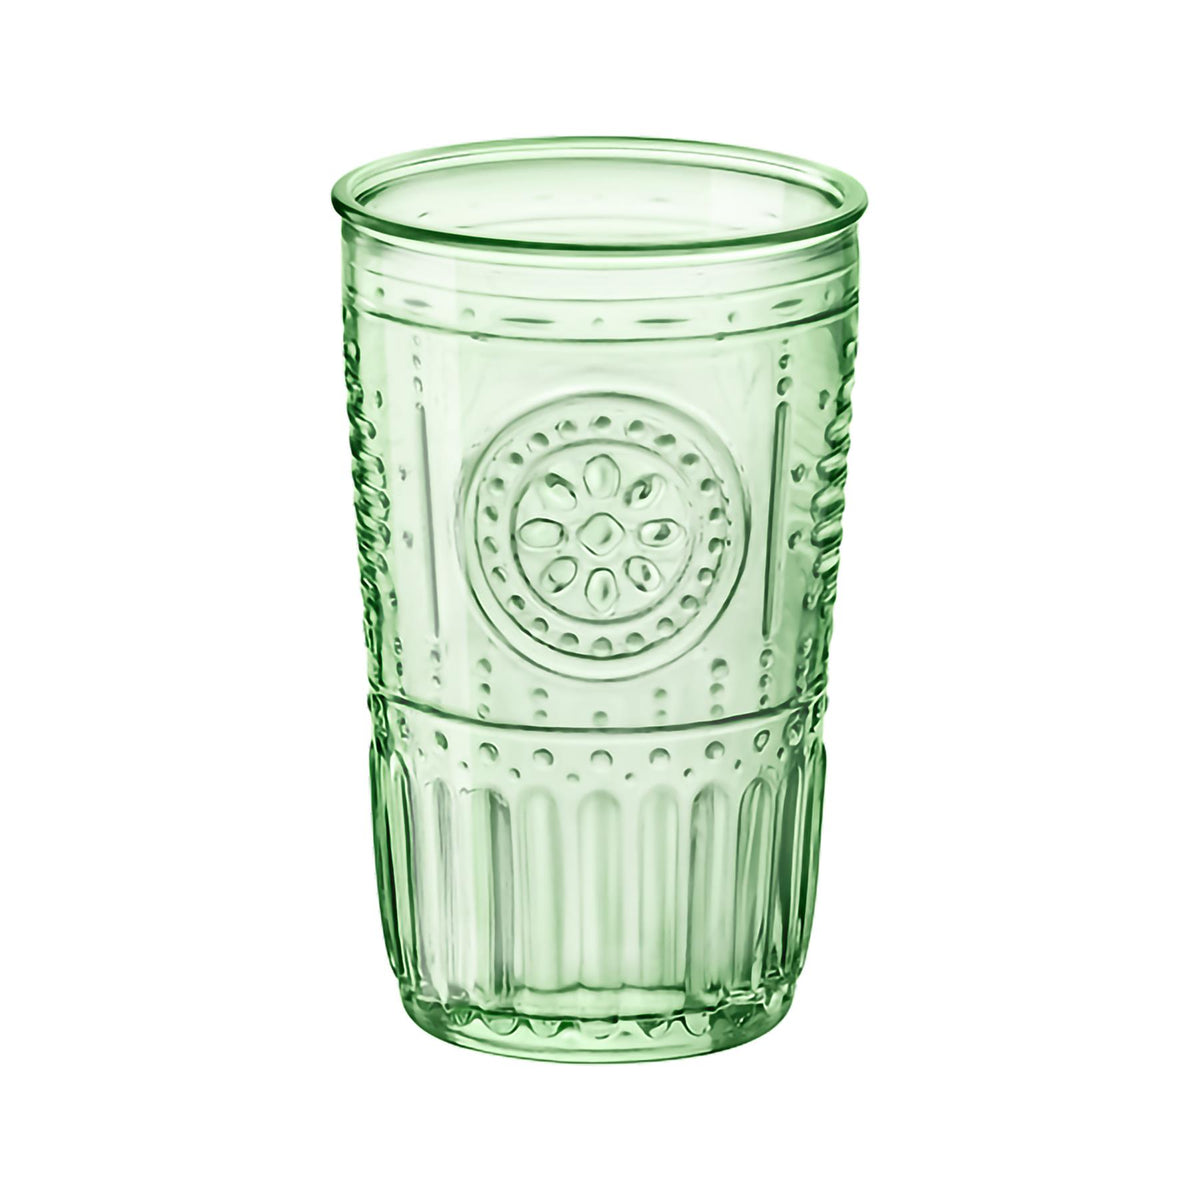 Bormioli Rocco Romantic Highball Glasses - 475ml - Pack of 6 - Green